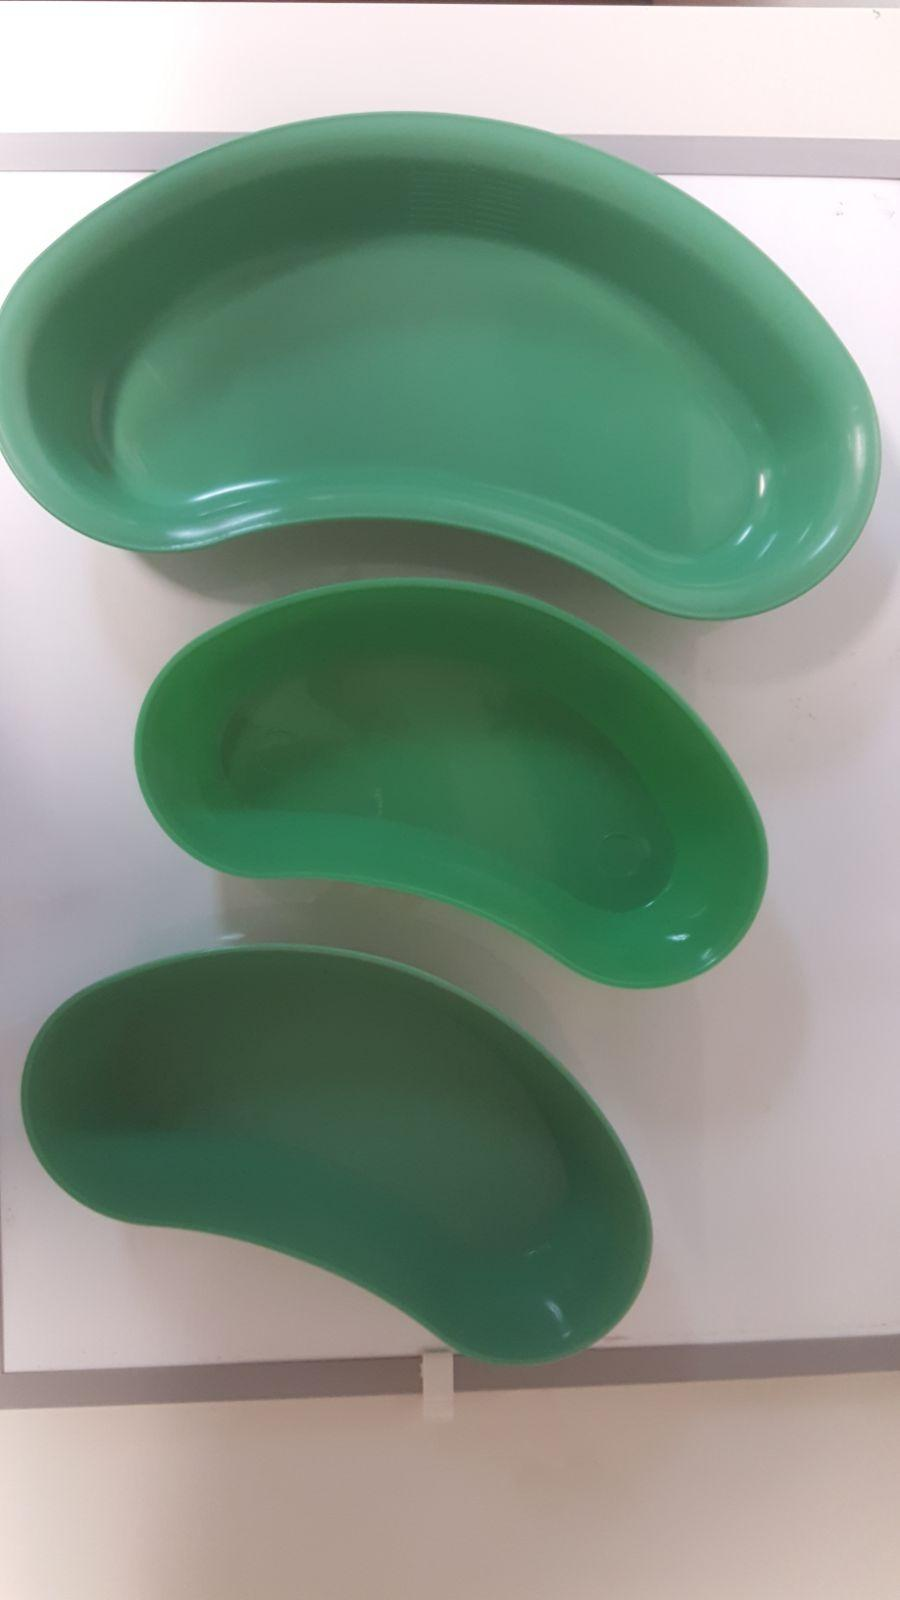 ULTRA KIDNEY DISH 225MM GREEN, EACH